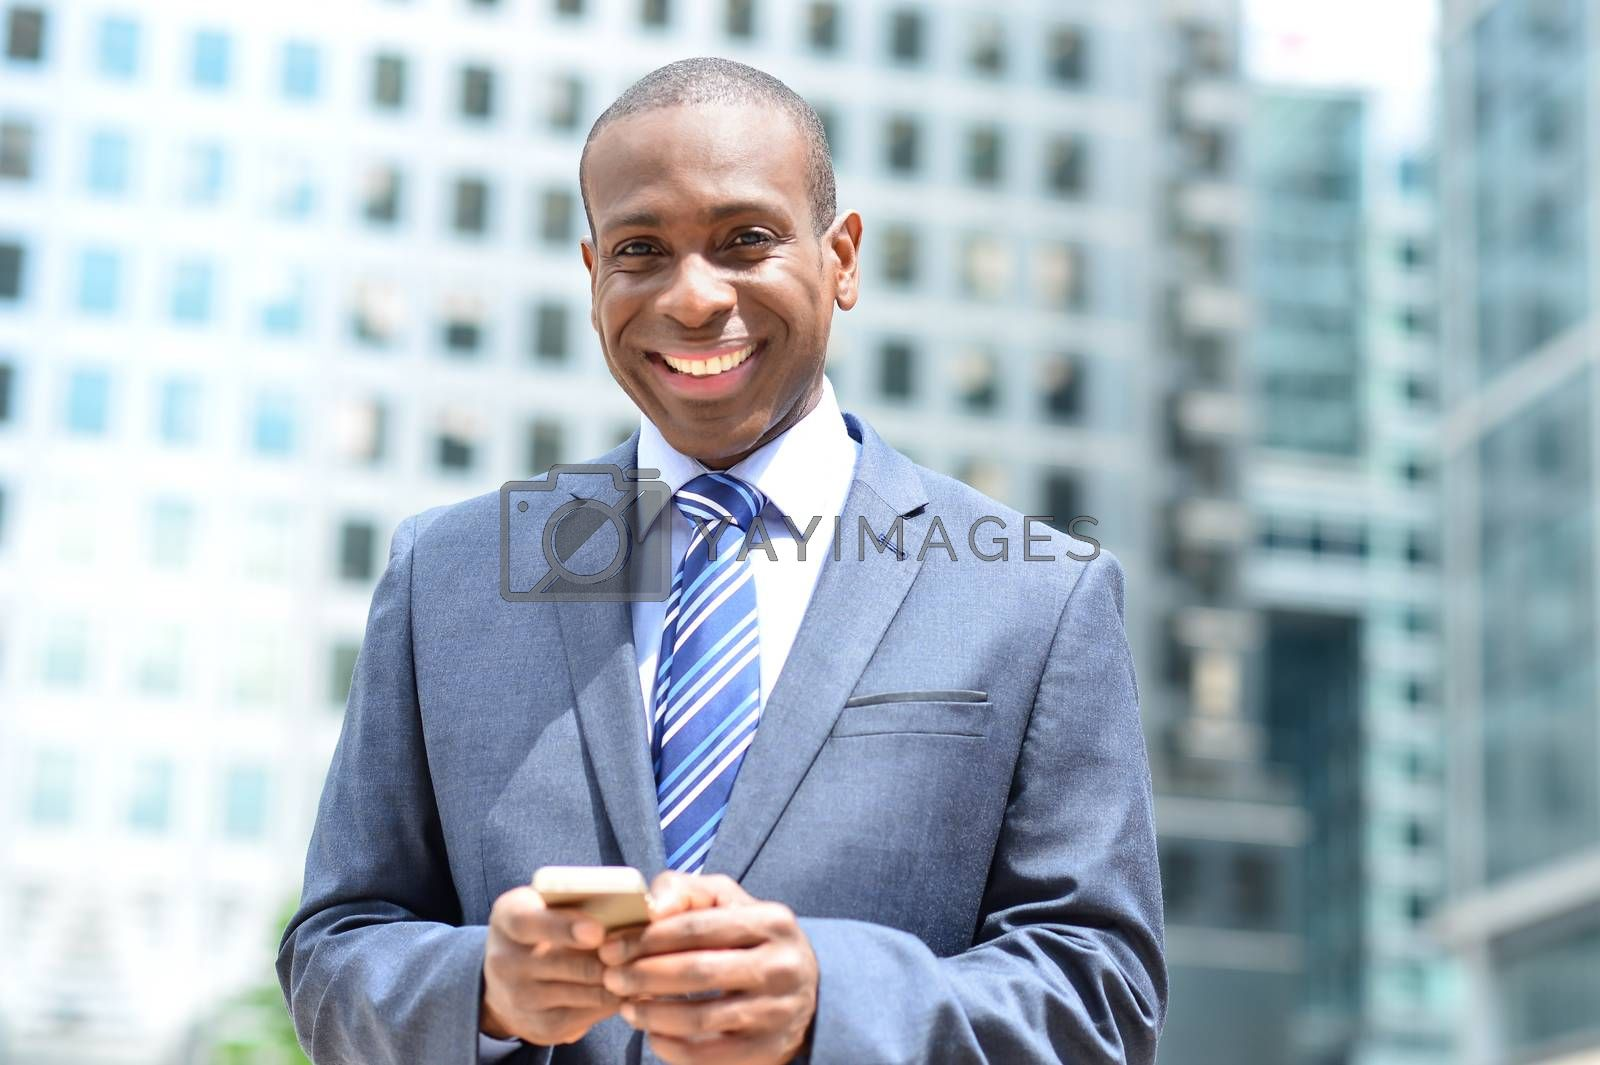 Smiling businessman posing with his mobile phone